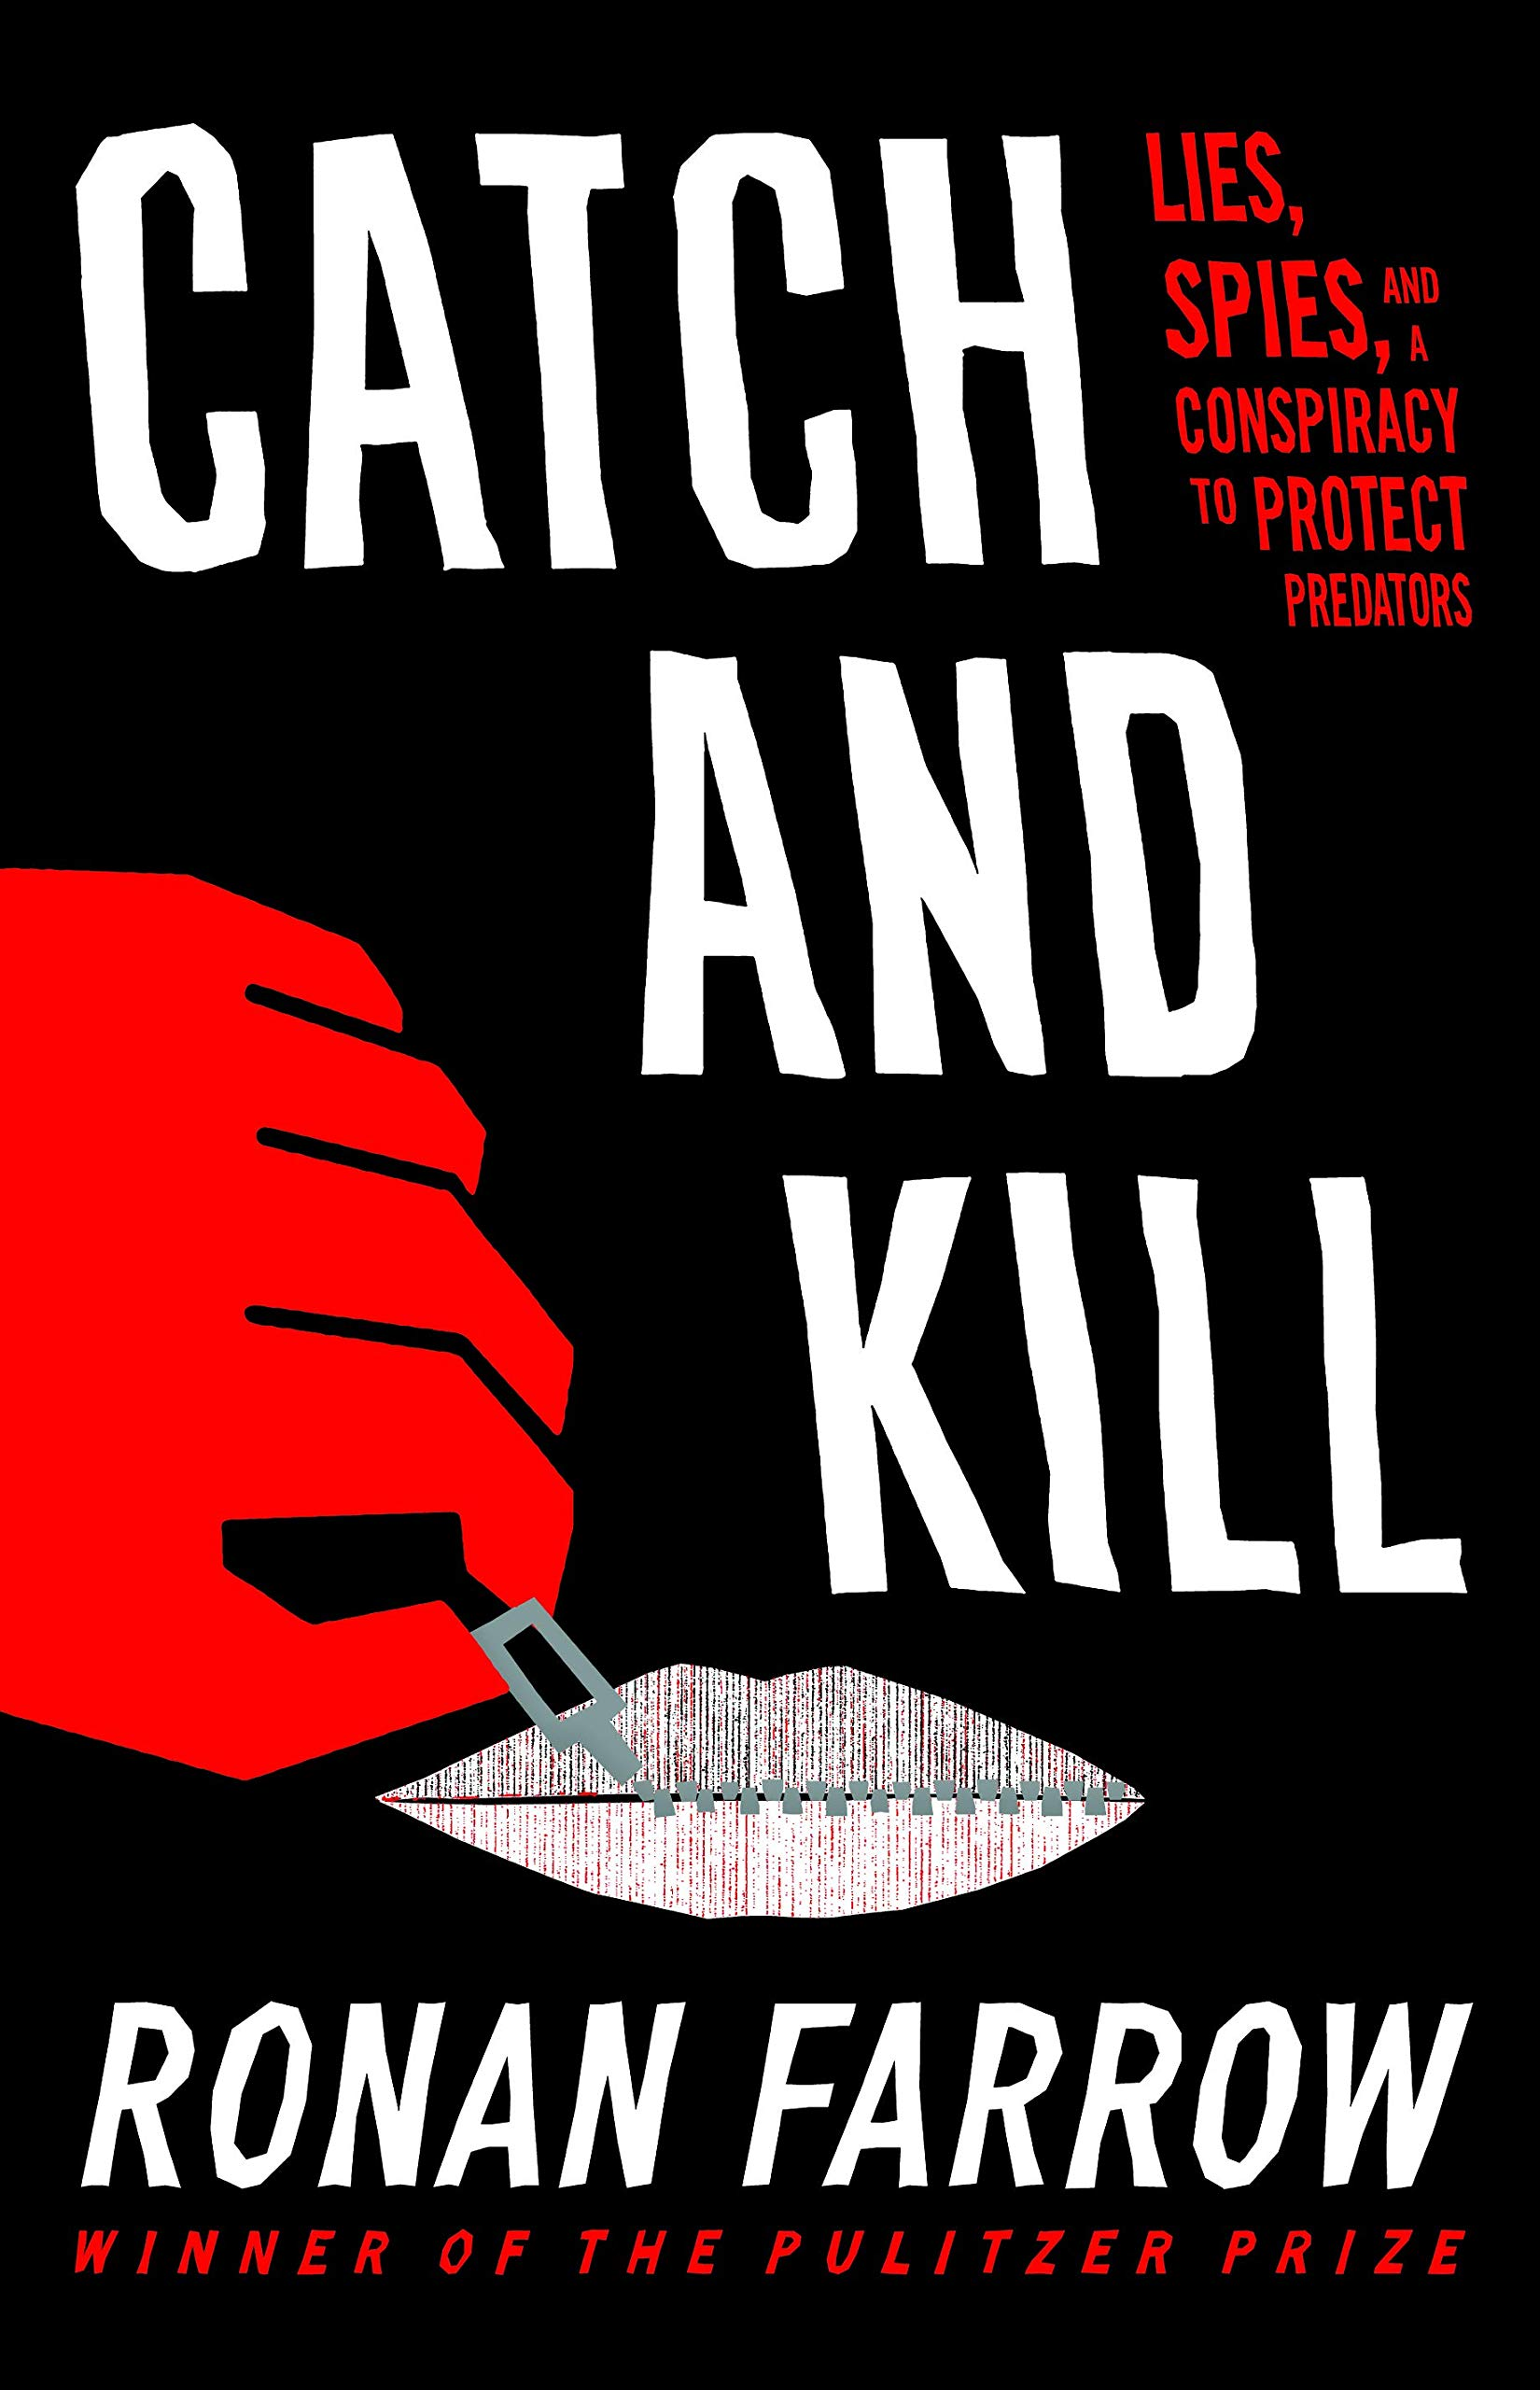 Catch and Kill: Lies, Spies, and a Conspiracy to Protect Predators by Little, Brown and Company